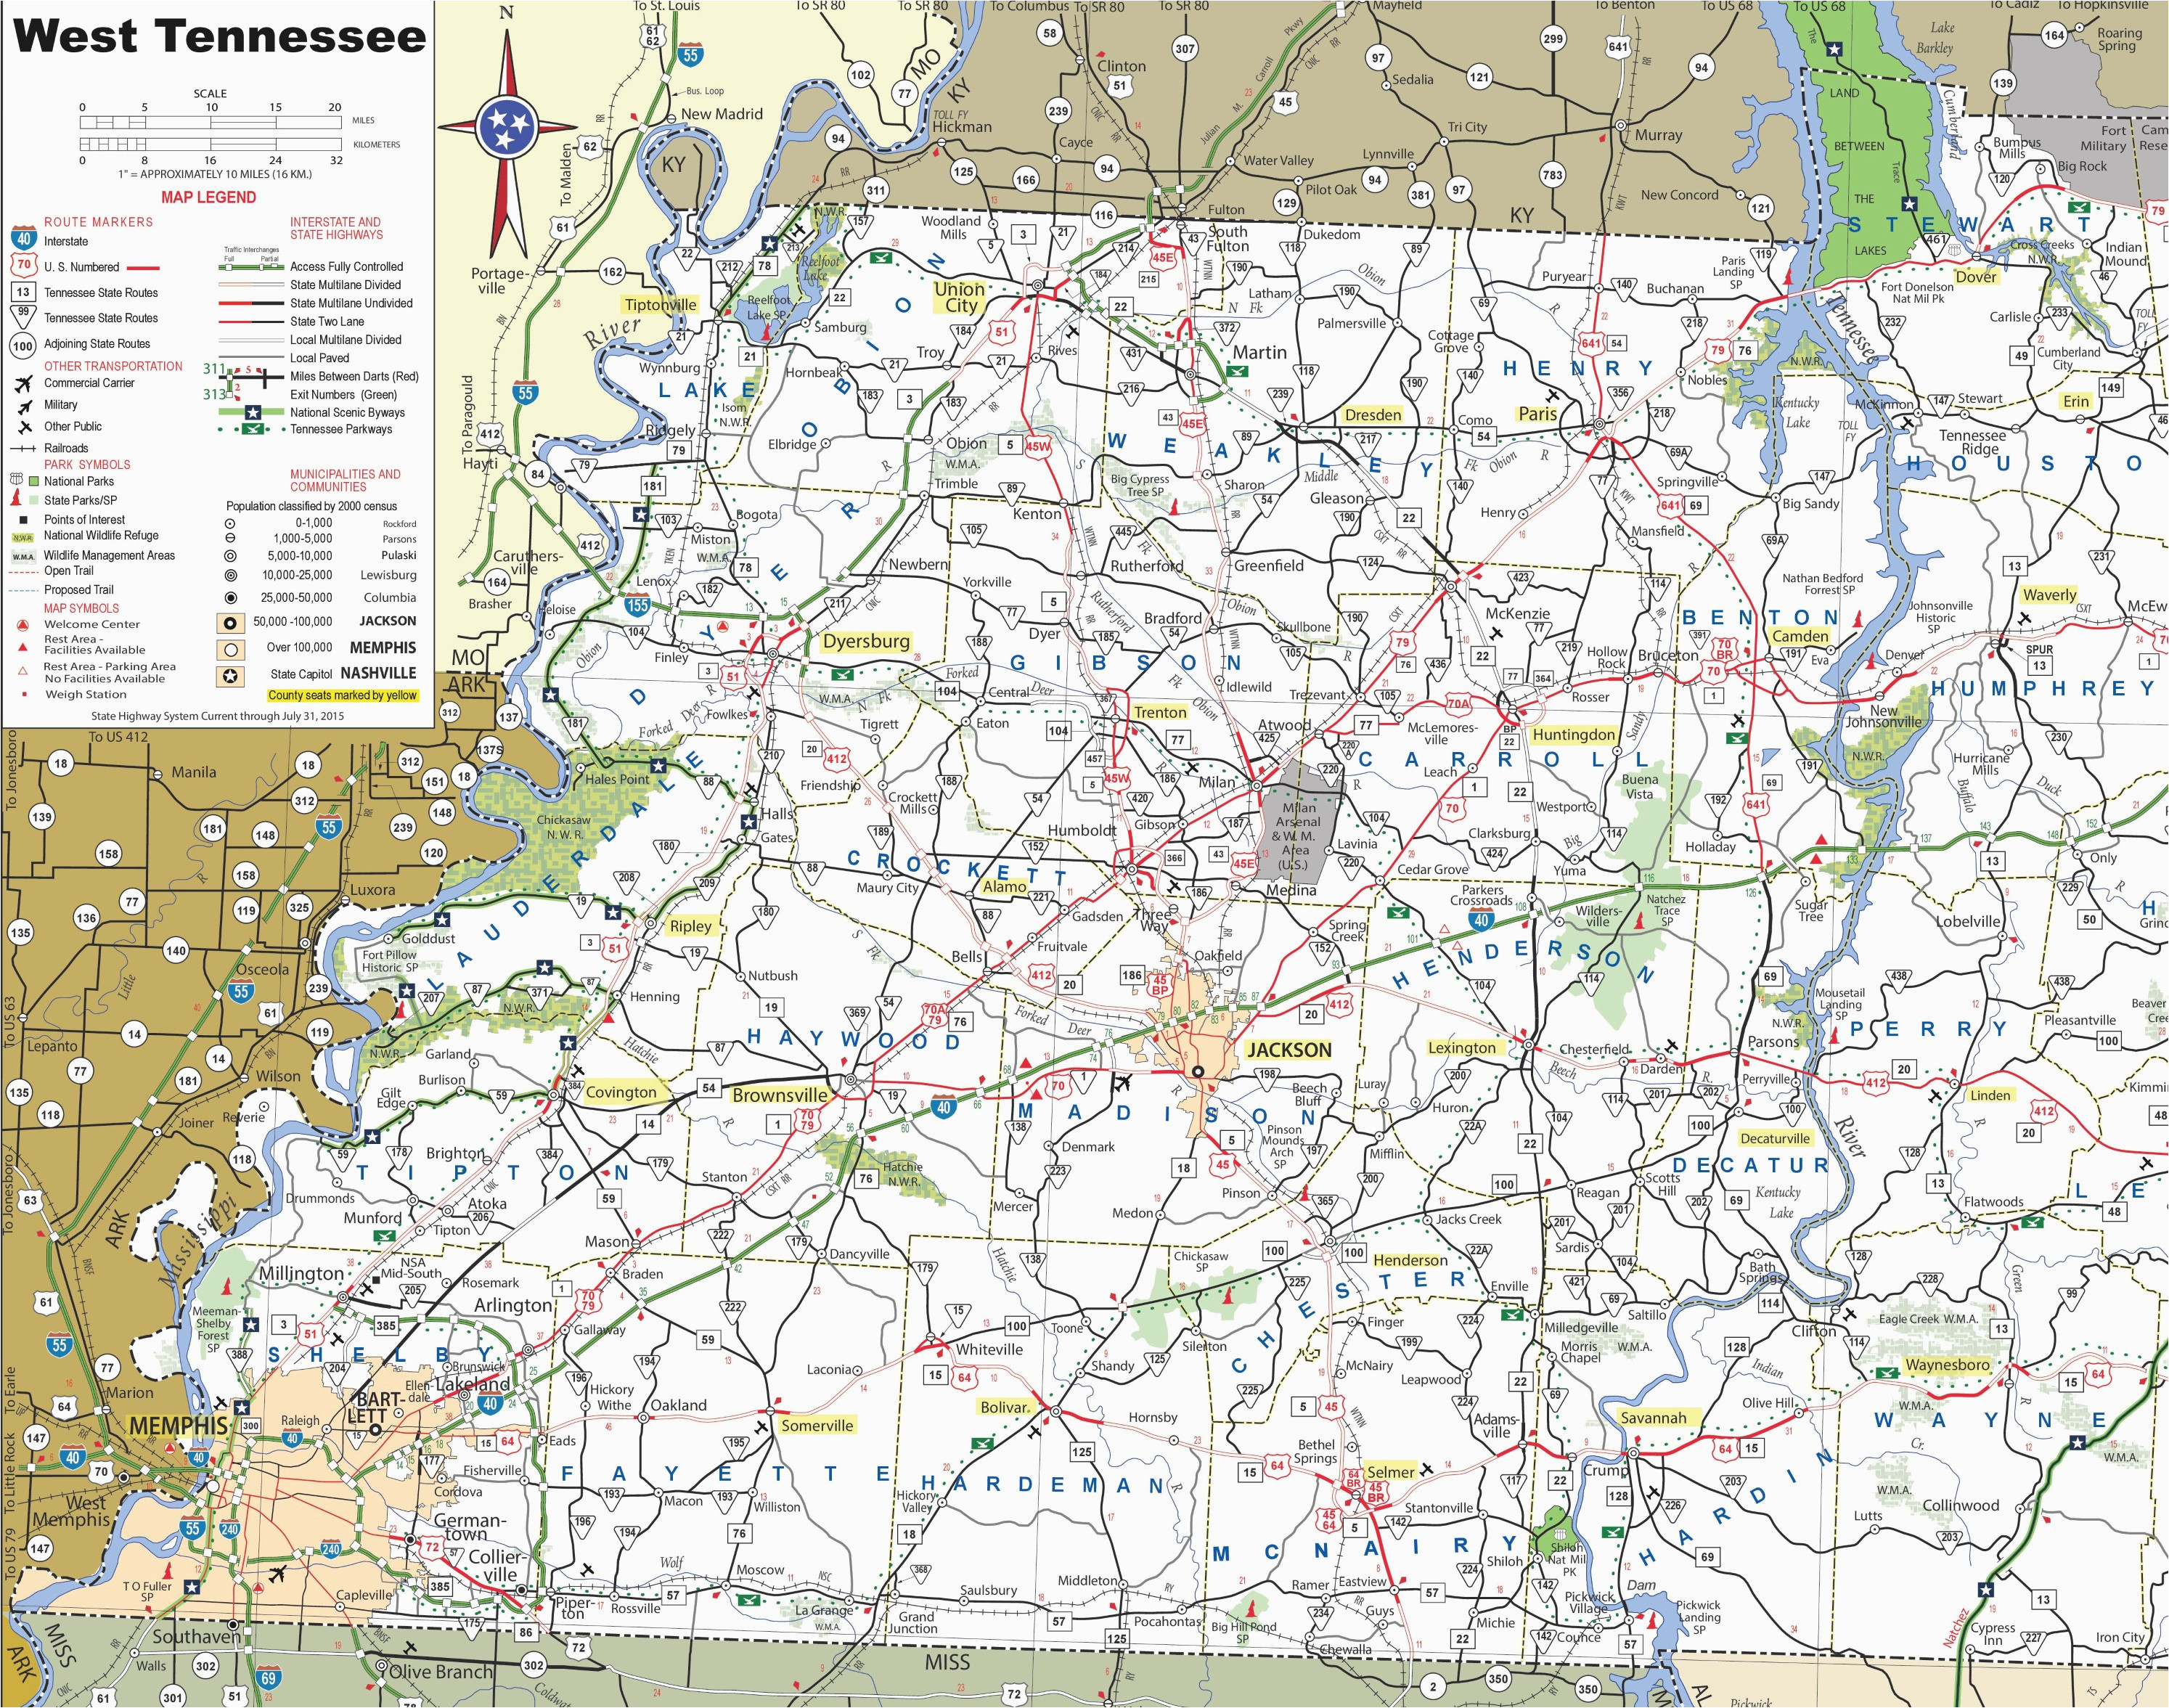 map of northern ga cities, map of nv cities, map of all cities, map of aa cities, map tennessee mountain home, map of wi cities, map of north ga cities, map of dc cities, map of pr cities, map of the carolinas cities, map of east tennessee cities, map of state cities, map of ca cities, map of tennessee cities easy, kentucky us map with cities, map of eu cities, map of oc cities, tn state map showing cities, middle tn cities, map of central fl cities, on map of tn cities